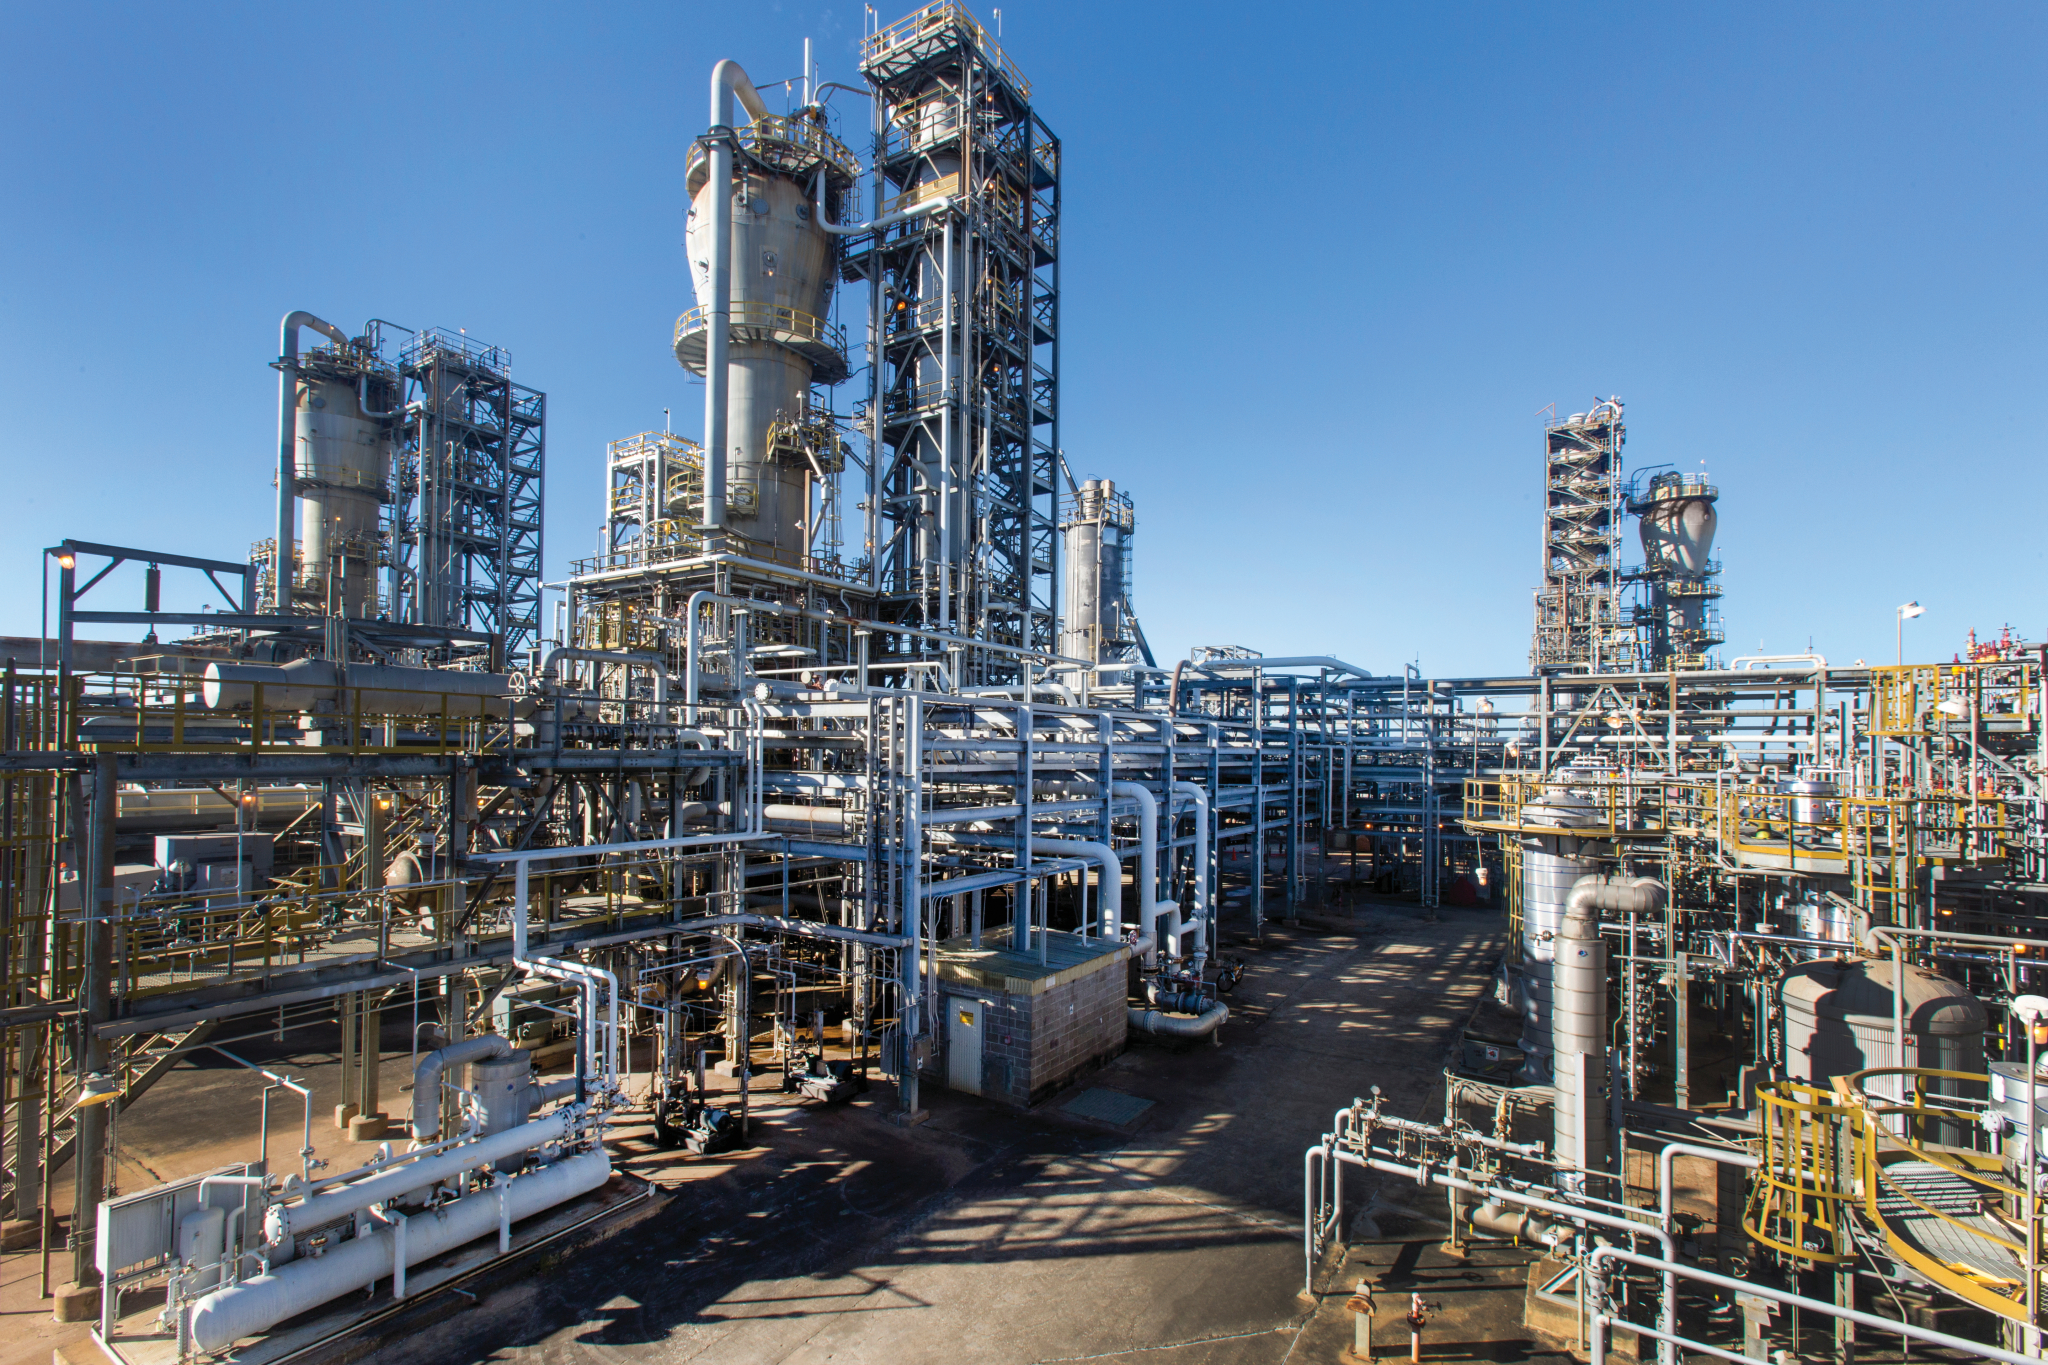 Mix of refining, petrochemical plants impacted by Imelda